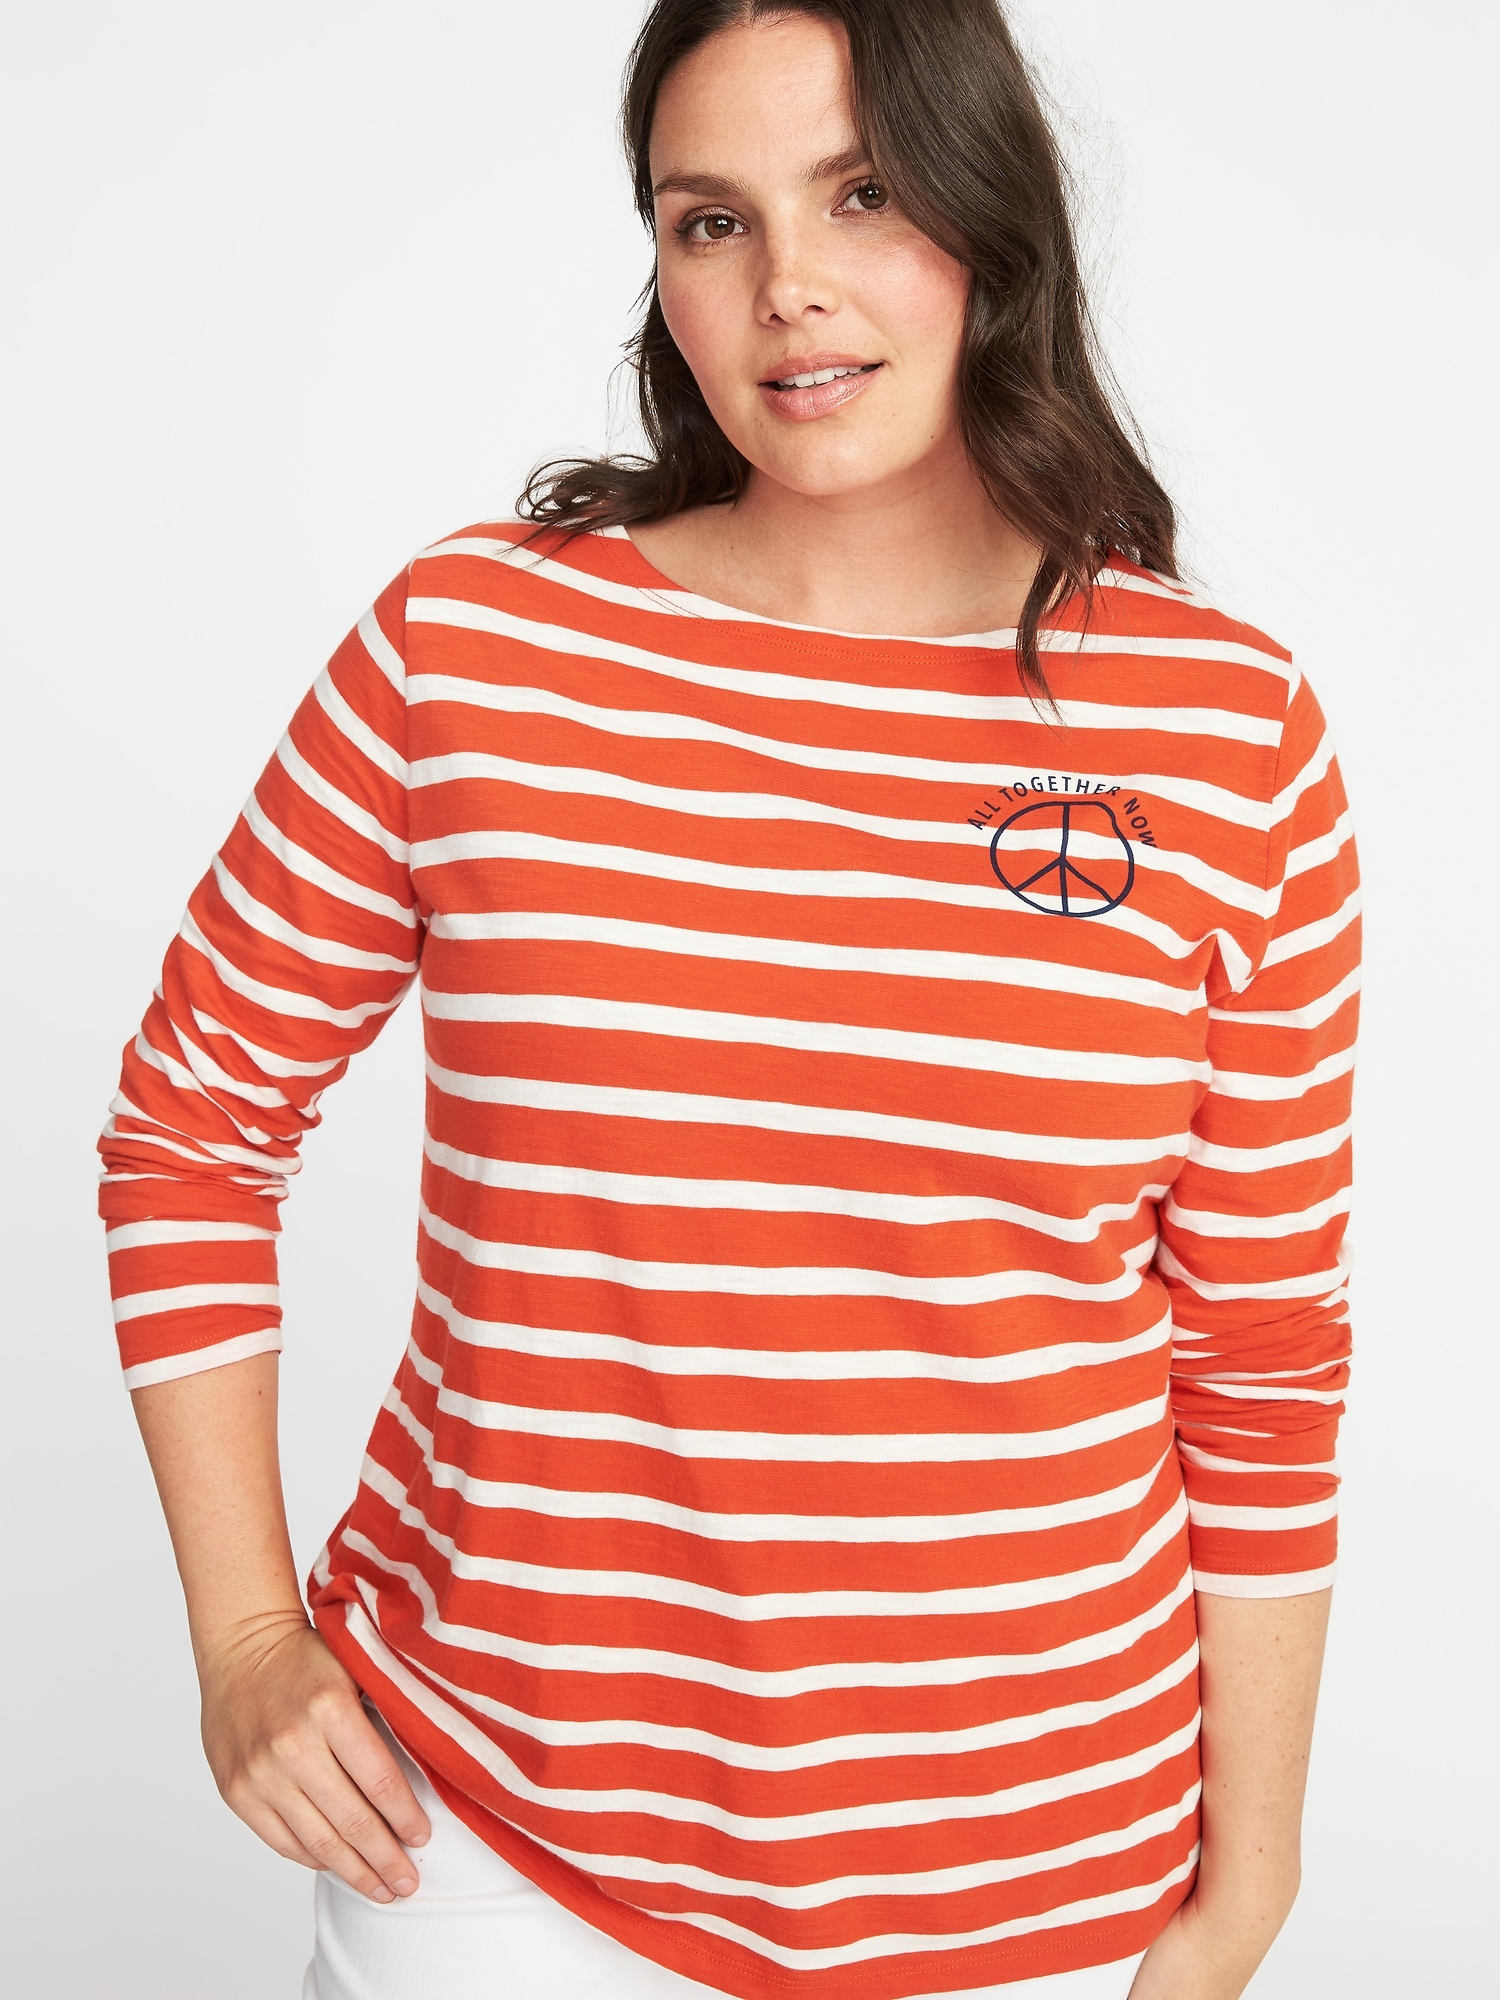 74d66c8a82ddc Relaxed Plus-Size Mariner-Stripe Graphic Tee